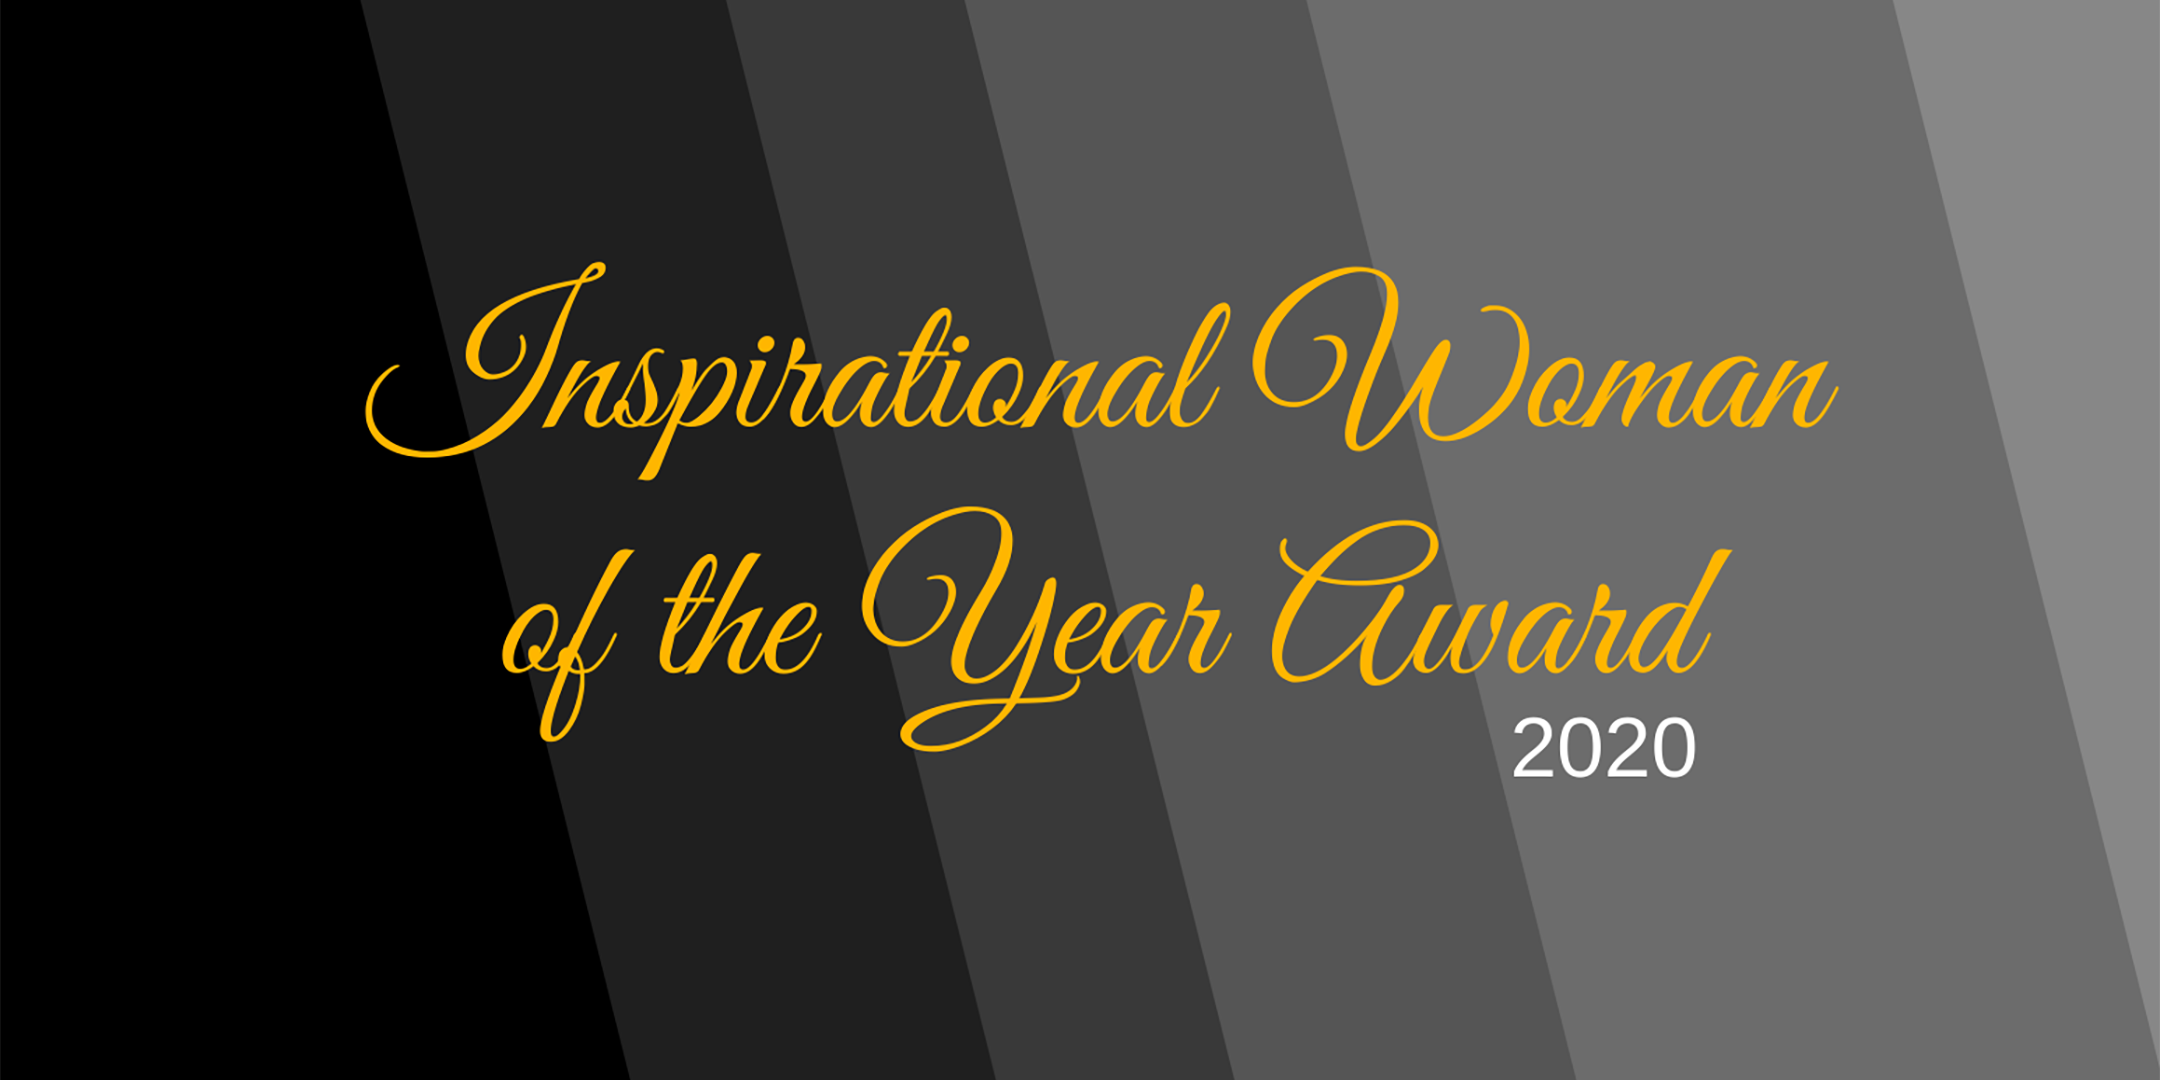 Banner: Inspirational Woman of the Year Award 2020